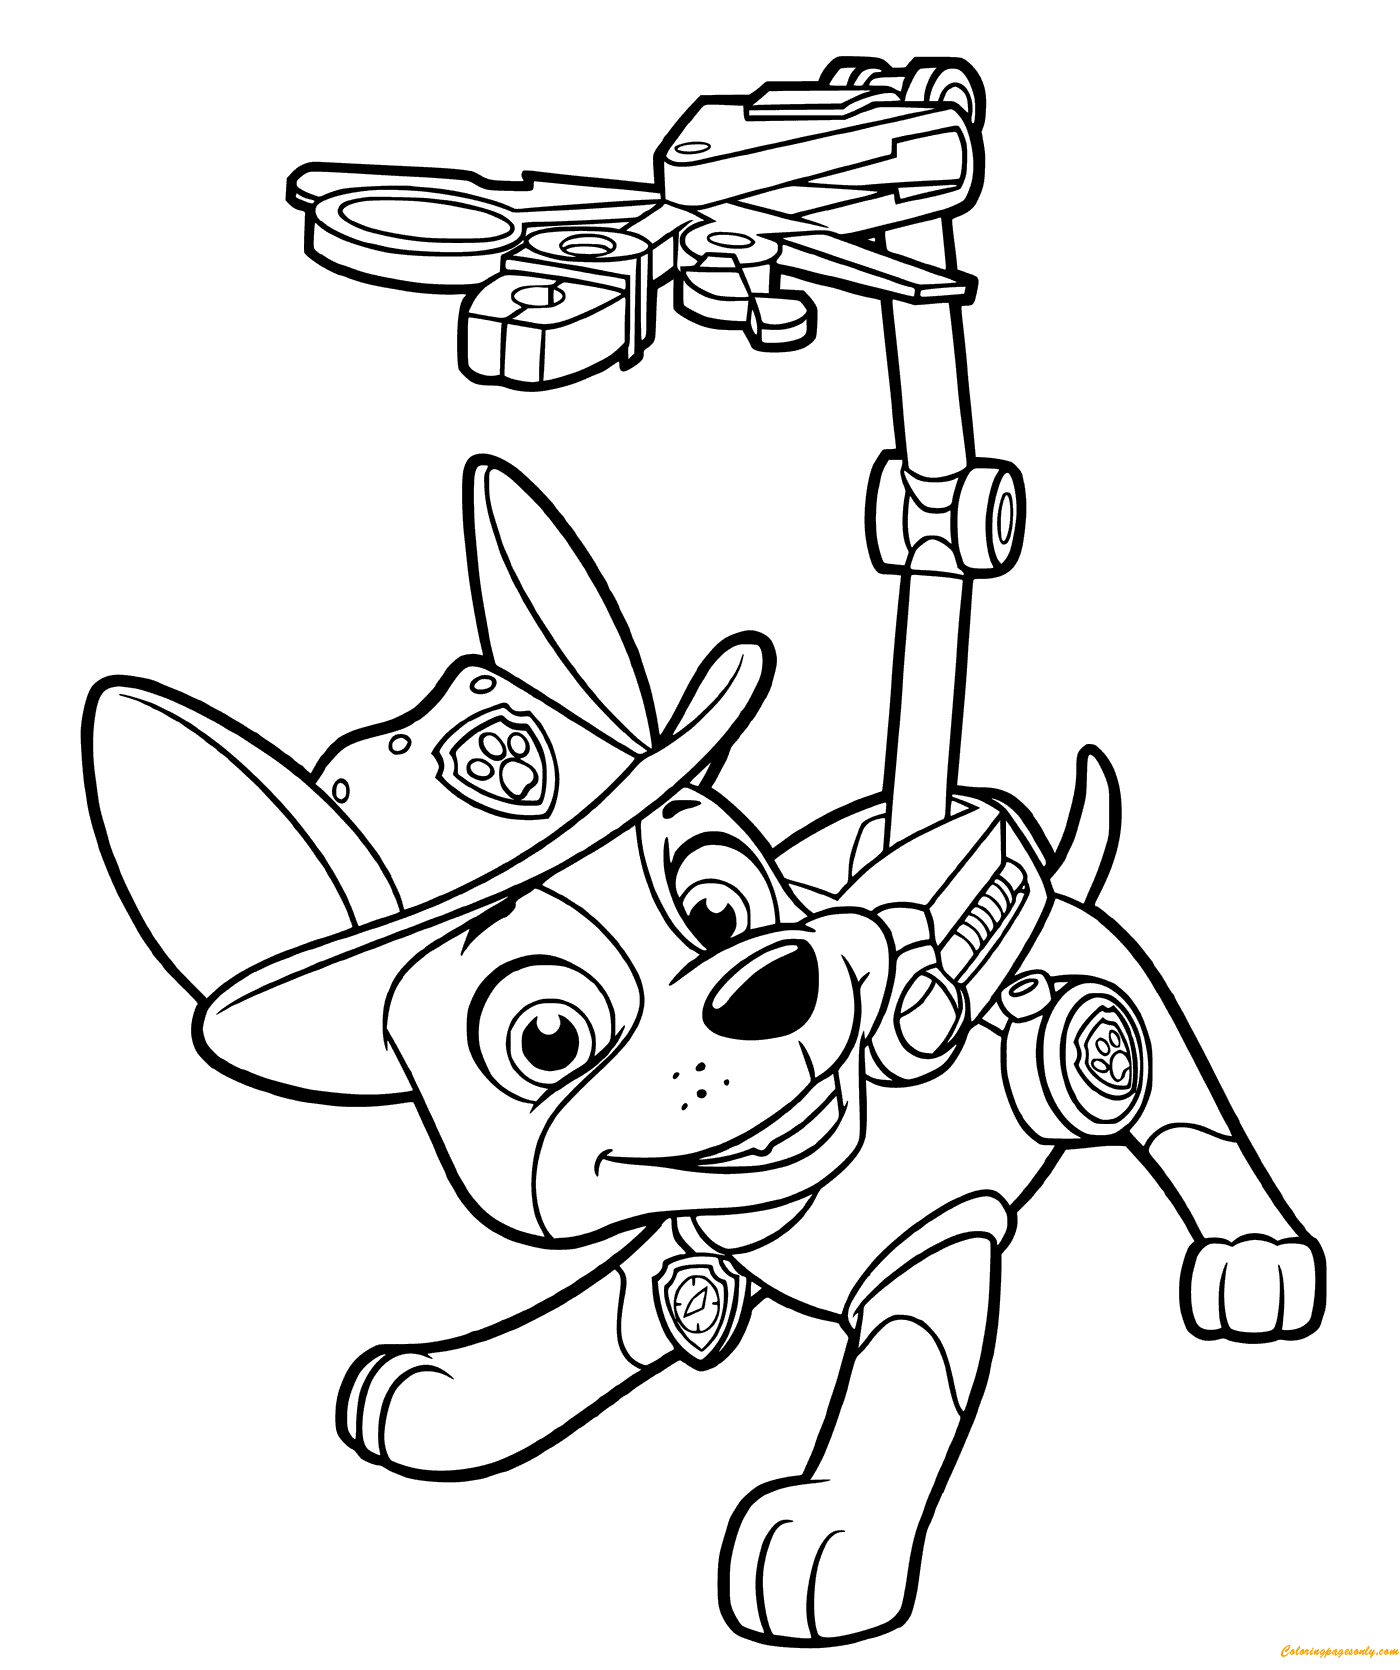 Paw Patrol Tracker Coloring Pages - Cartoons Coloring Pages - Free  Printable Coloring Pages Online